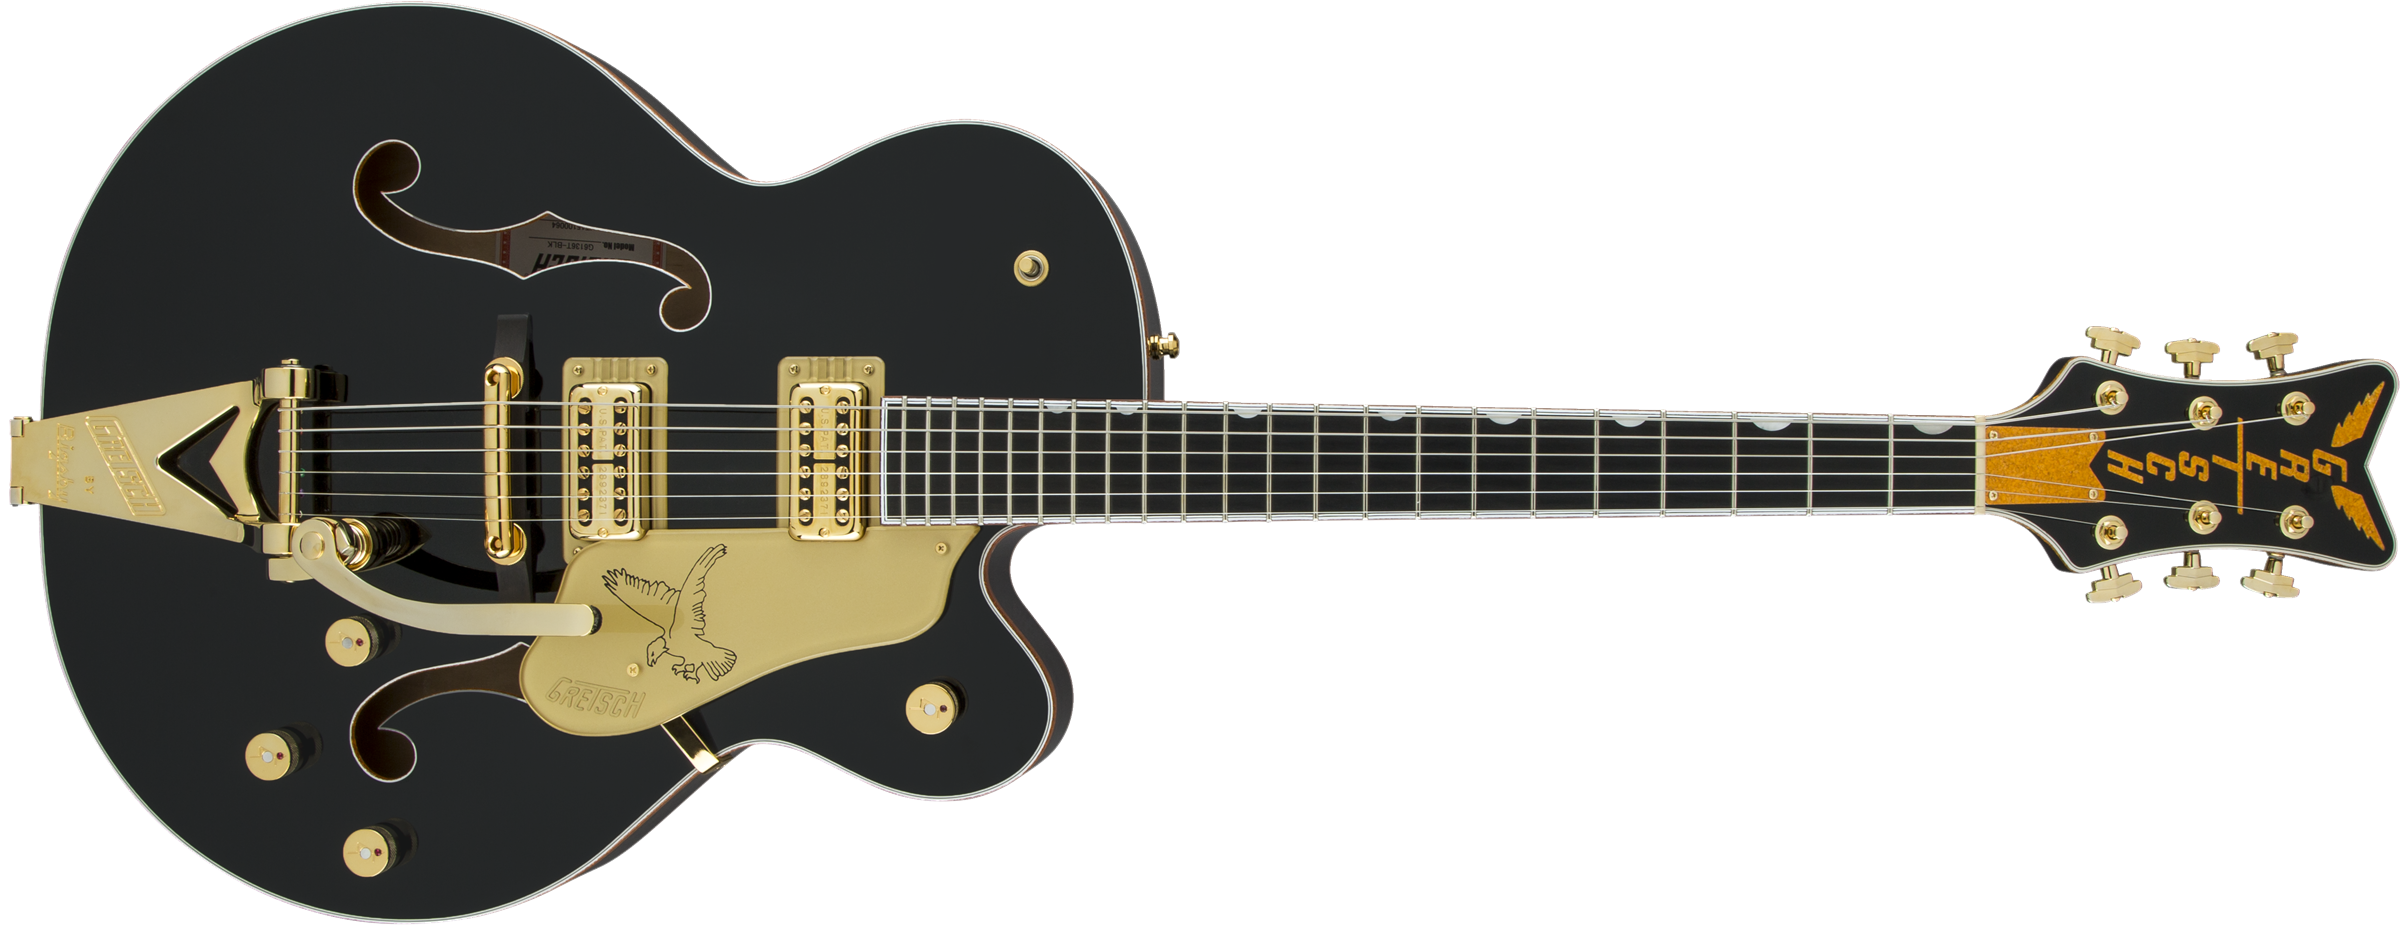 GRETSCH-G6136T-BLK-Players-Edition-Falcon-with-String-Thru-Bigsby-FilterTron-Pickups-Black-sku-571000145